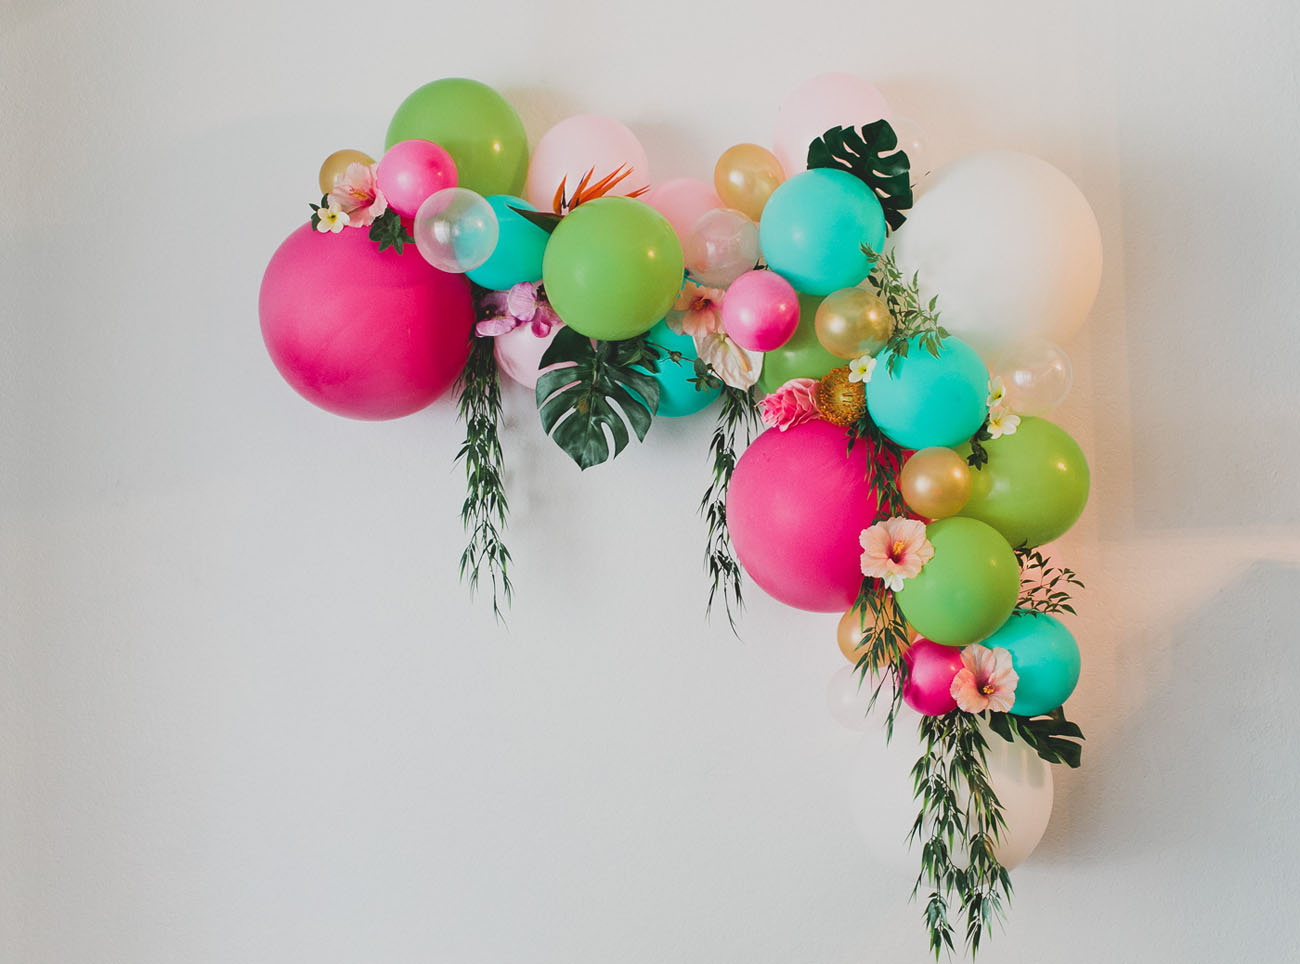 Creative Weekend Links - festive-balloon-arch